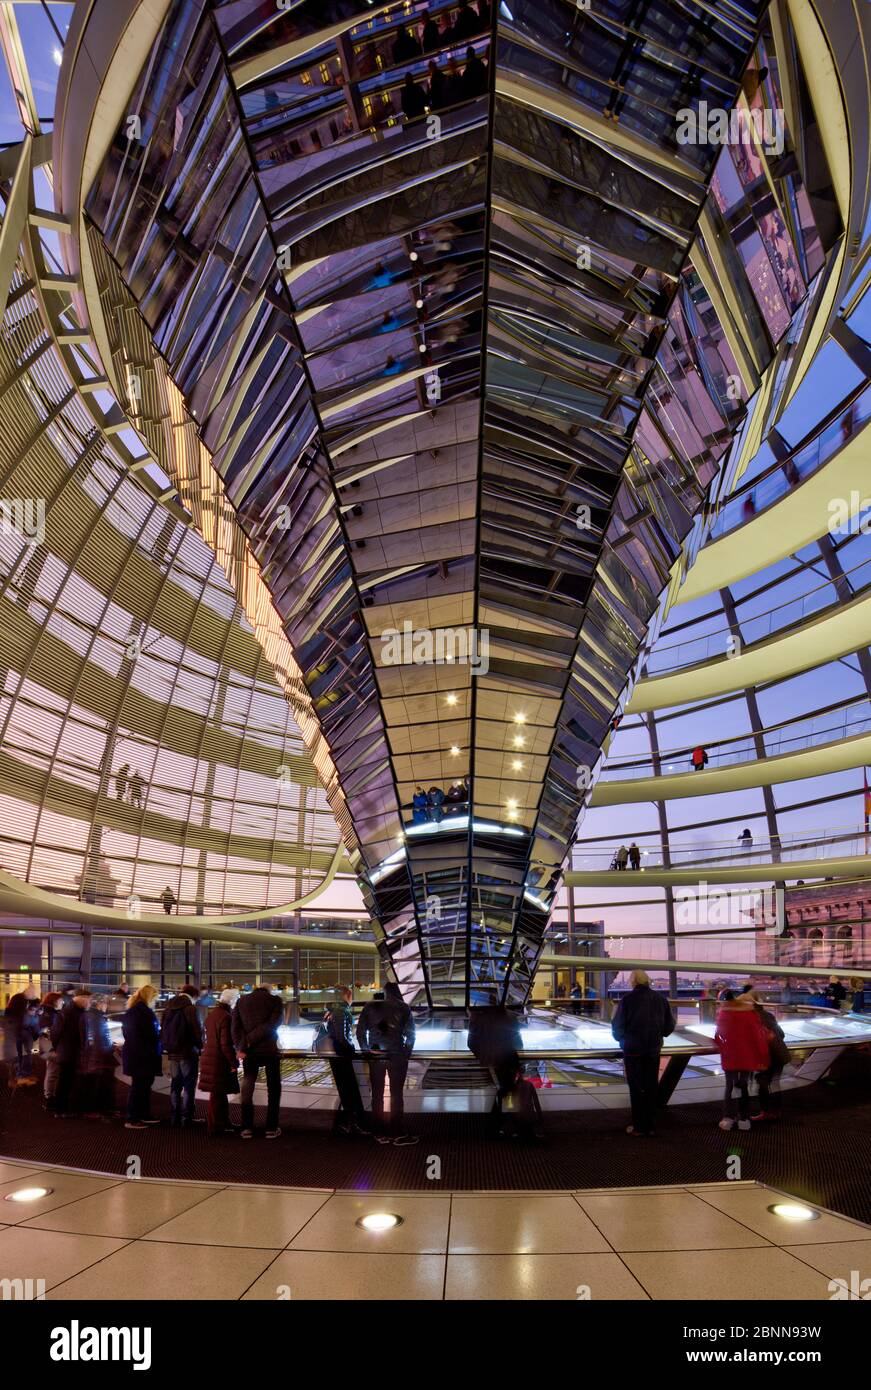 Reichstag building, dome, inside, visitor, Bundestag, government district, Berlin, Germany Stock Photo